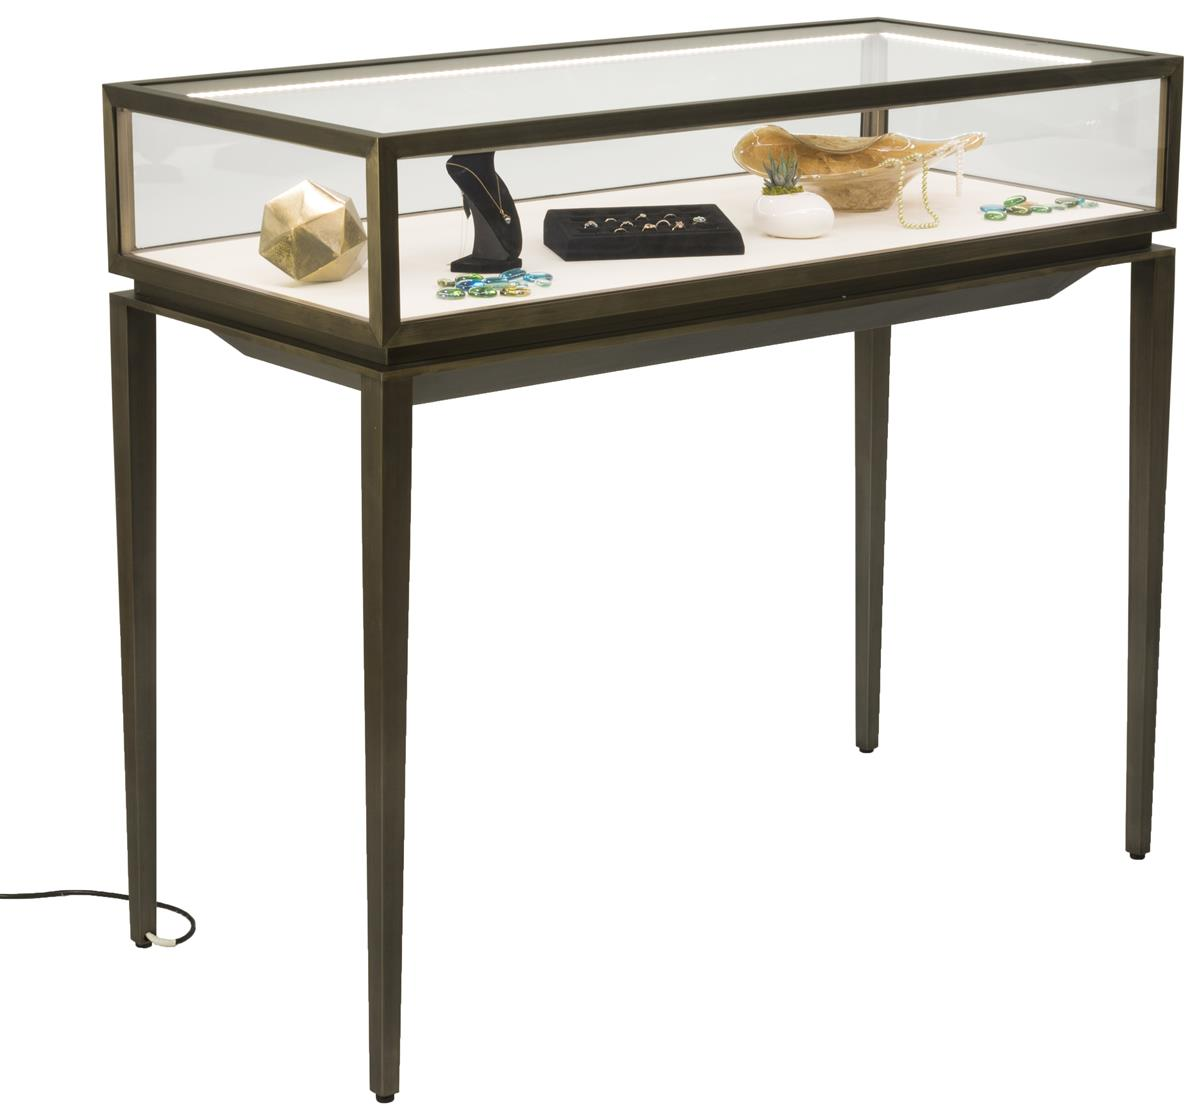 Modern Jewelry Display Table | Tapered Legs - photo#12